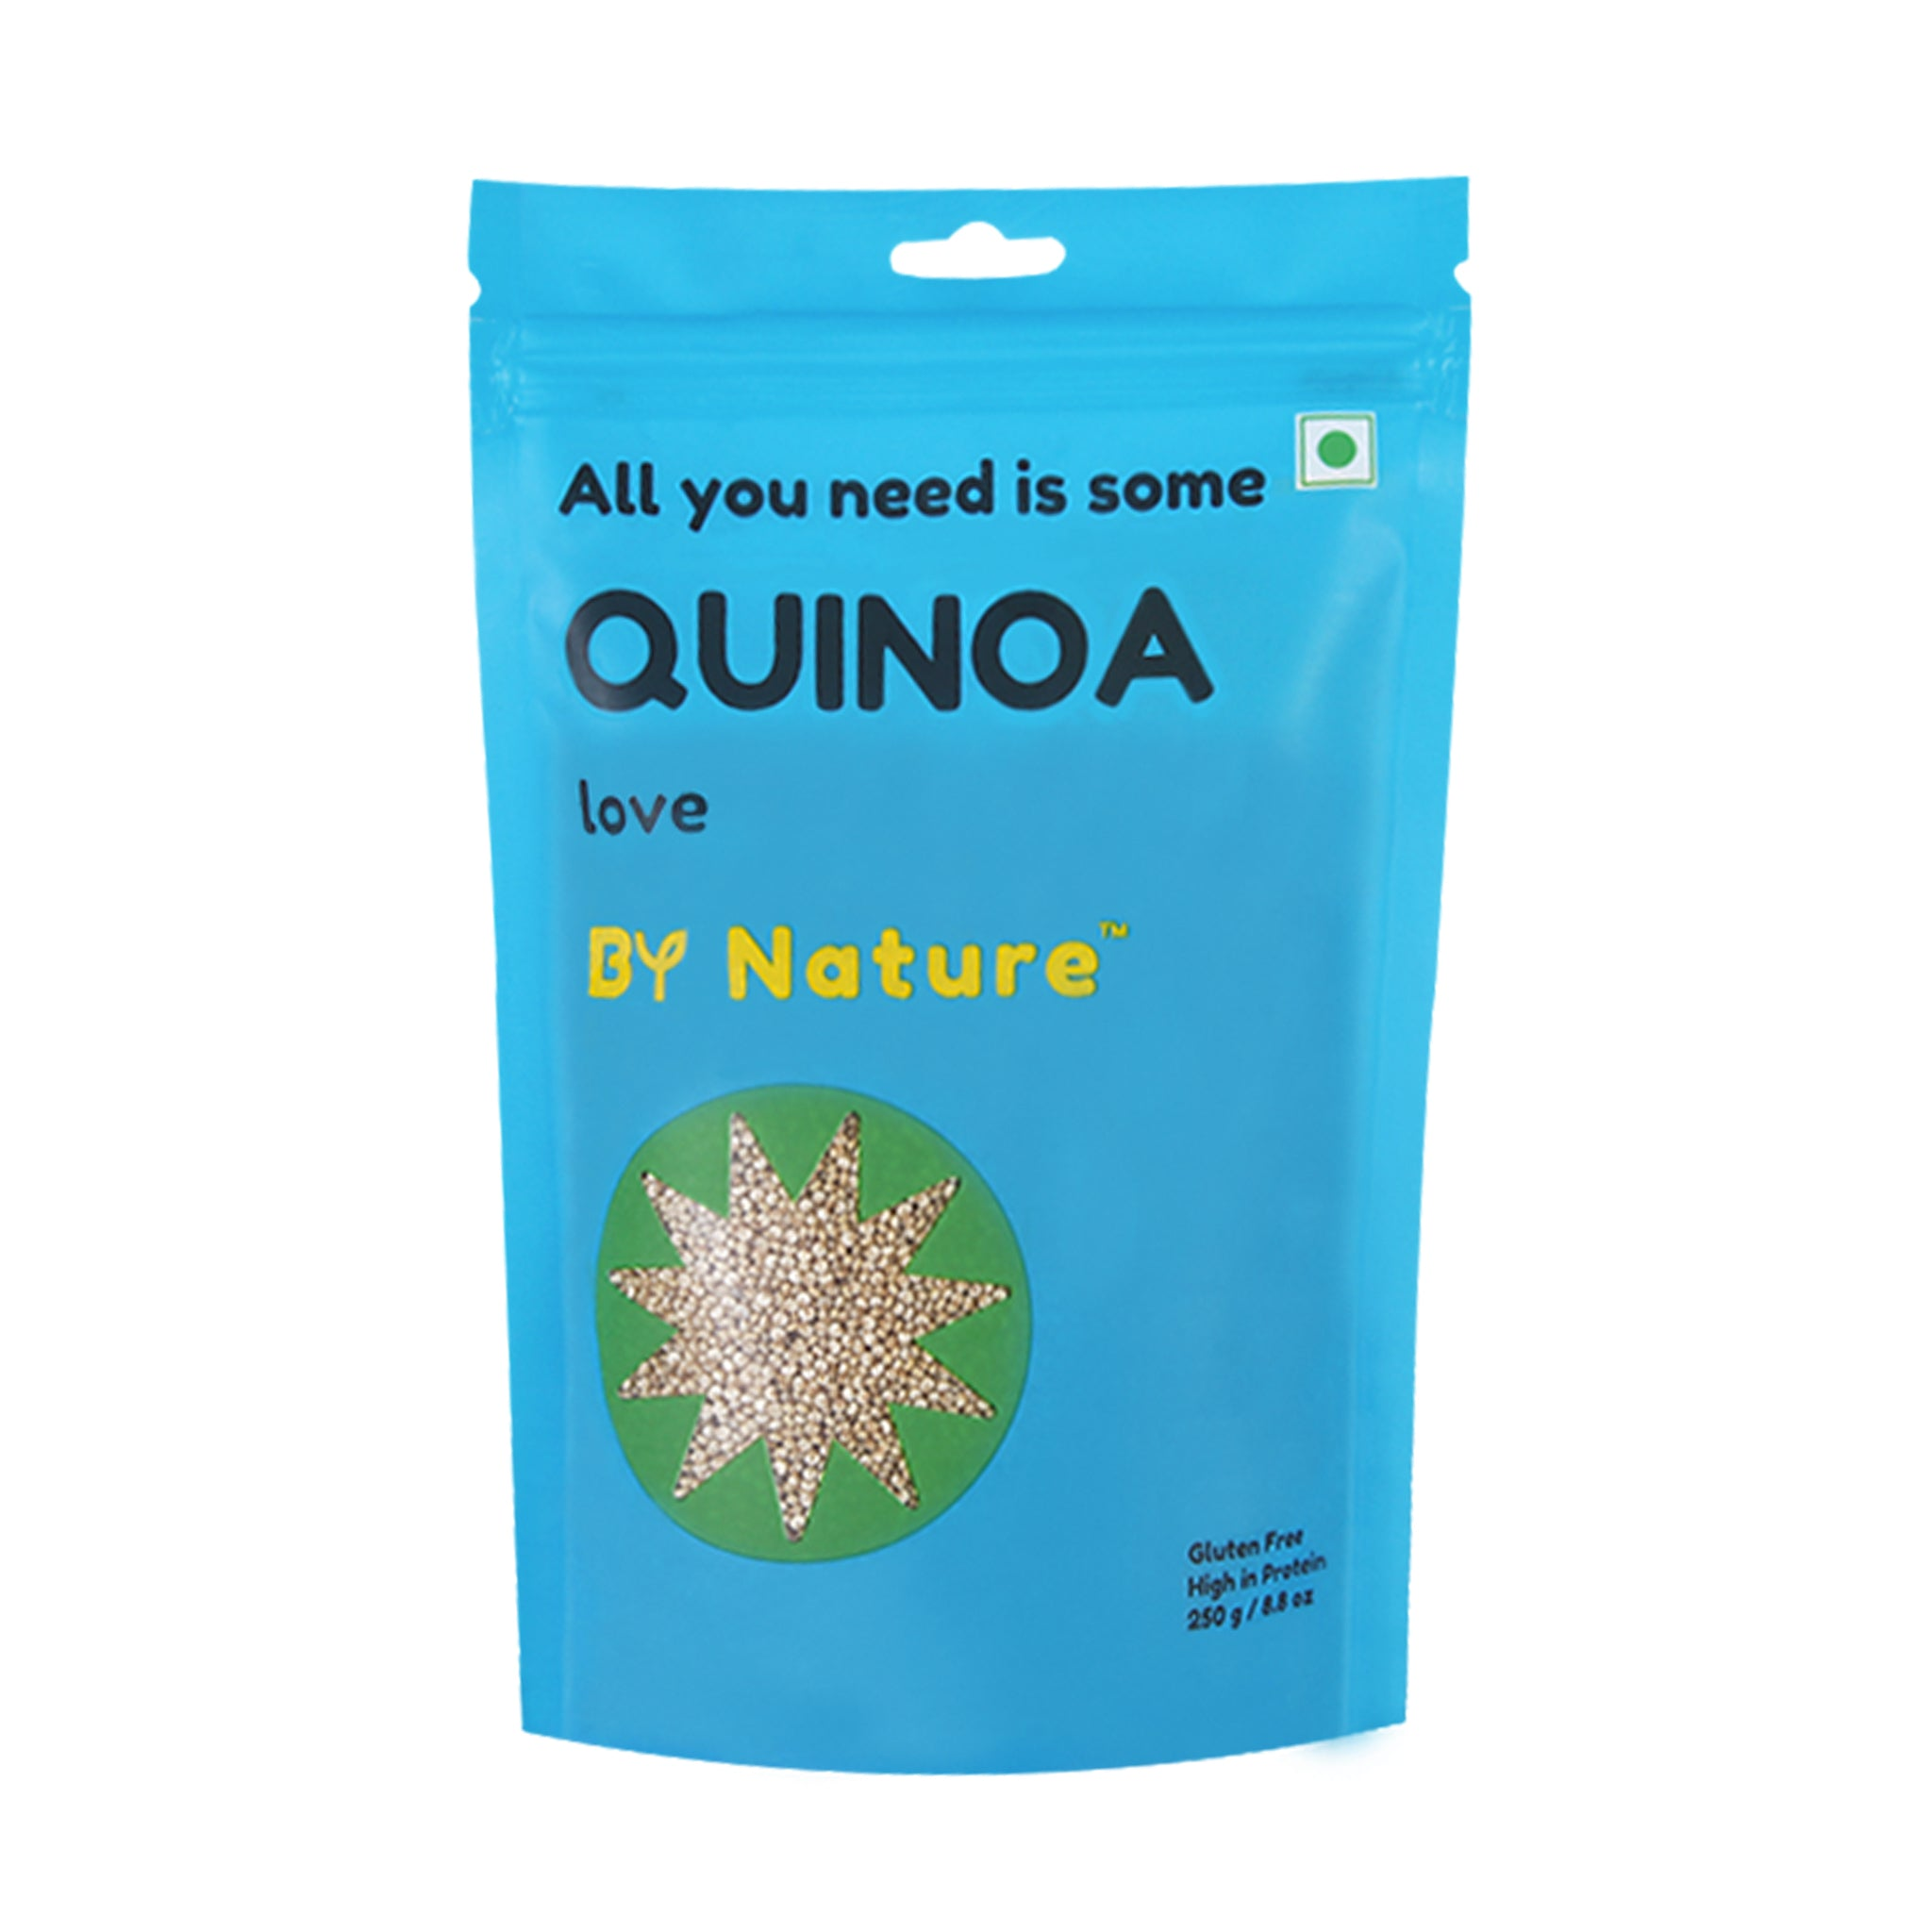 By Nature Quinoa 250 g